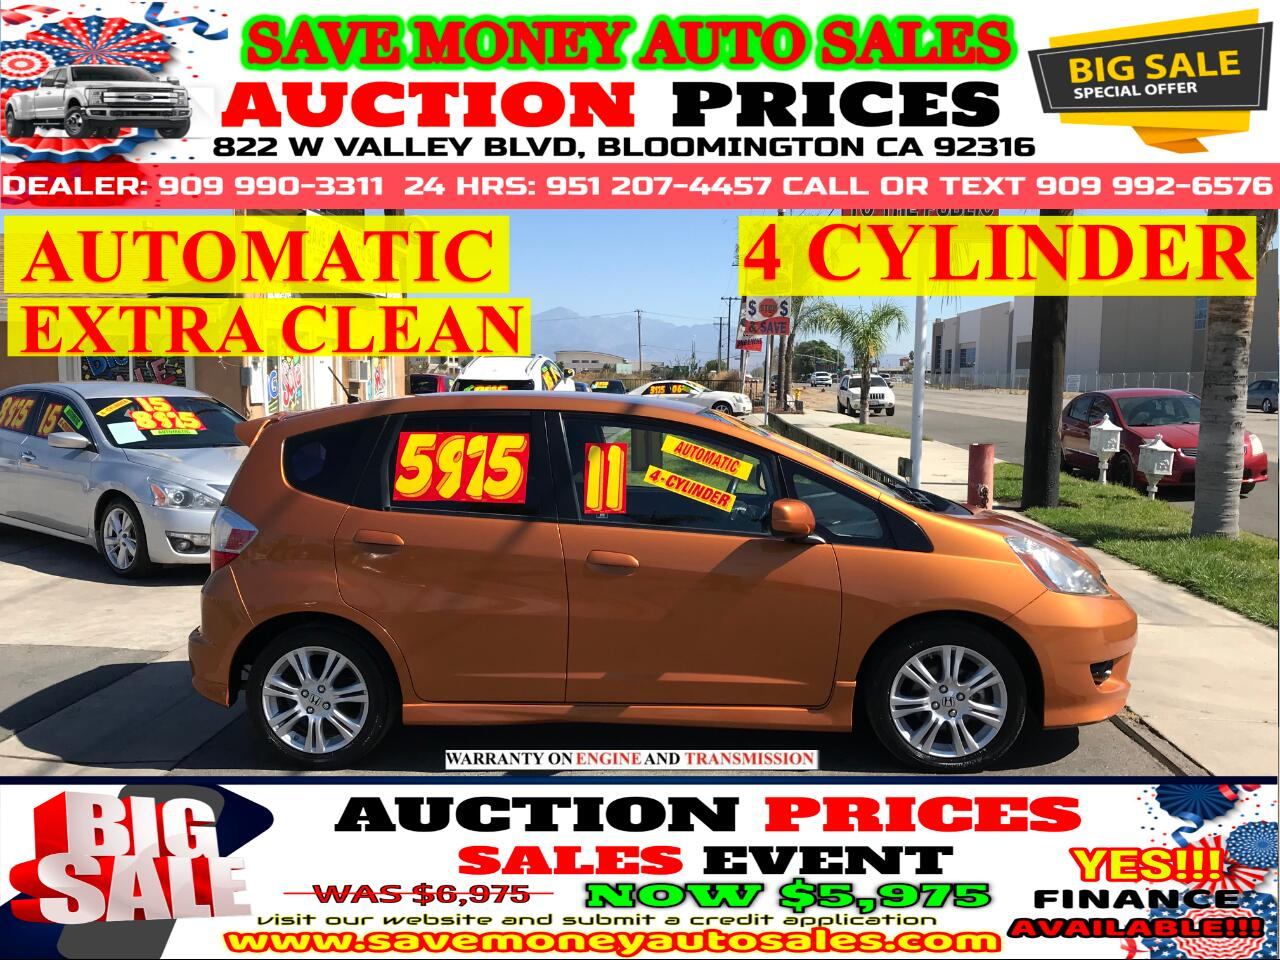 2011 Honda Fit 4 CYLINDER> AUTOMATIC> EXTRA CLEAN